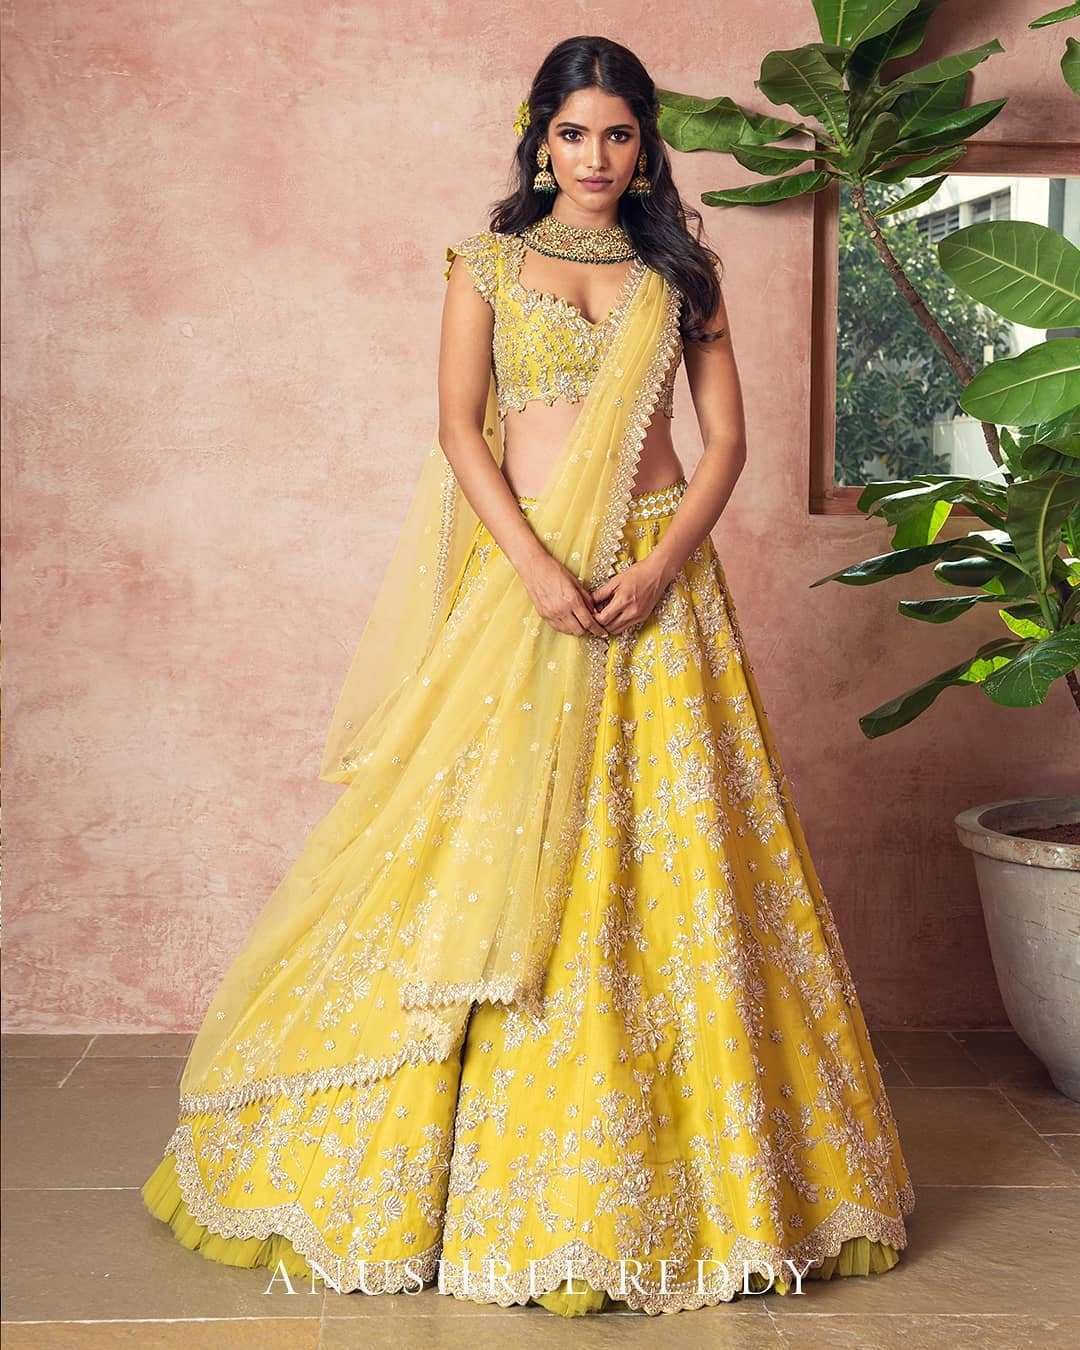 Anushree Reddy 2019 Bridal Lehengas. Are You Excited To ...